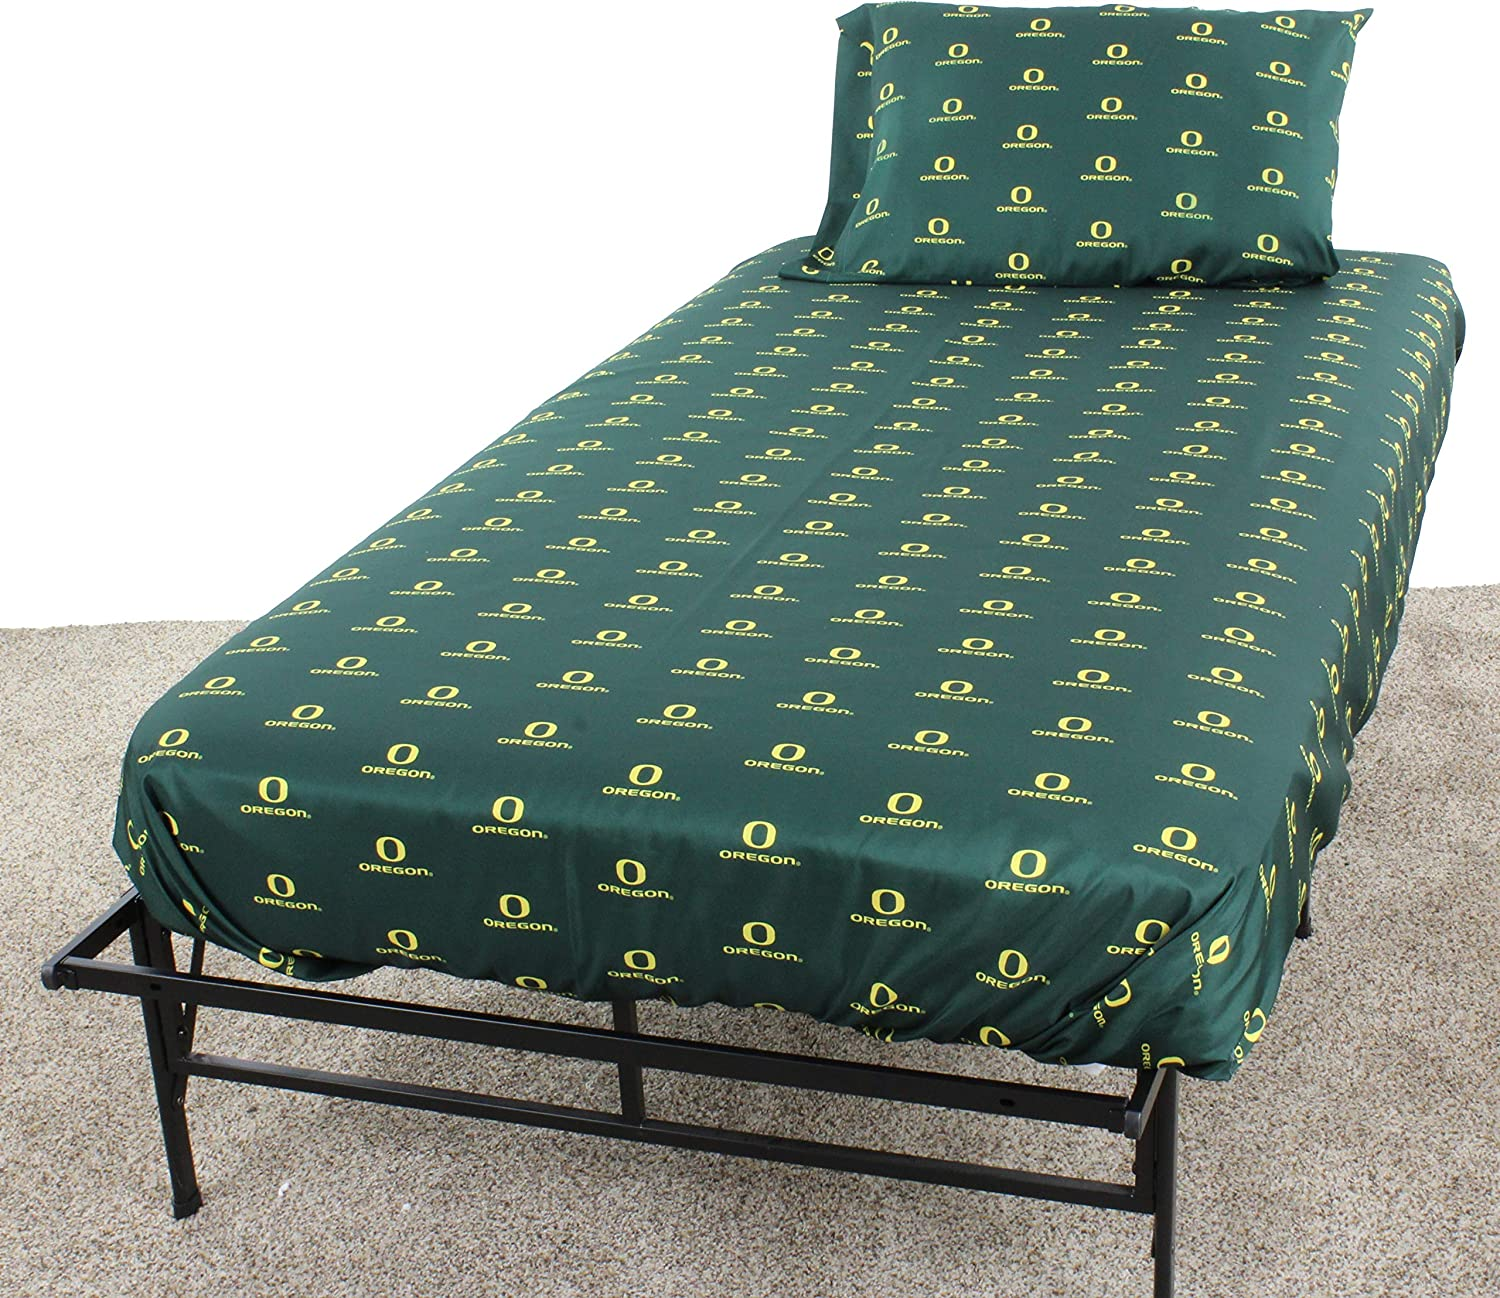 College Covers Oregon Ducks Printed Solid Sheet Set, Twin